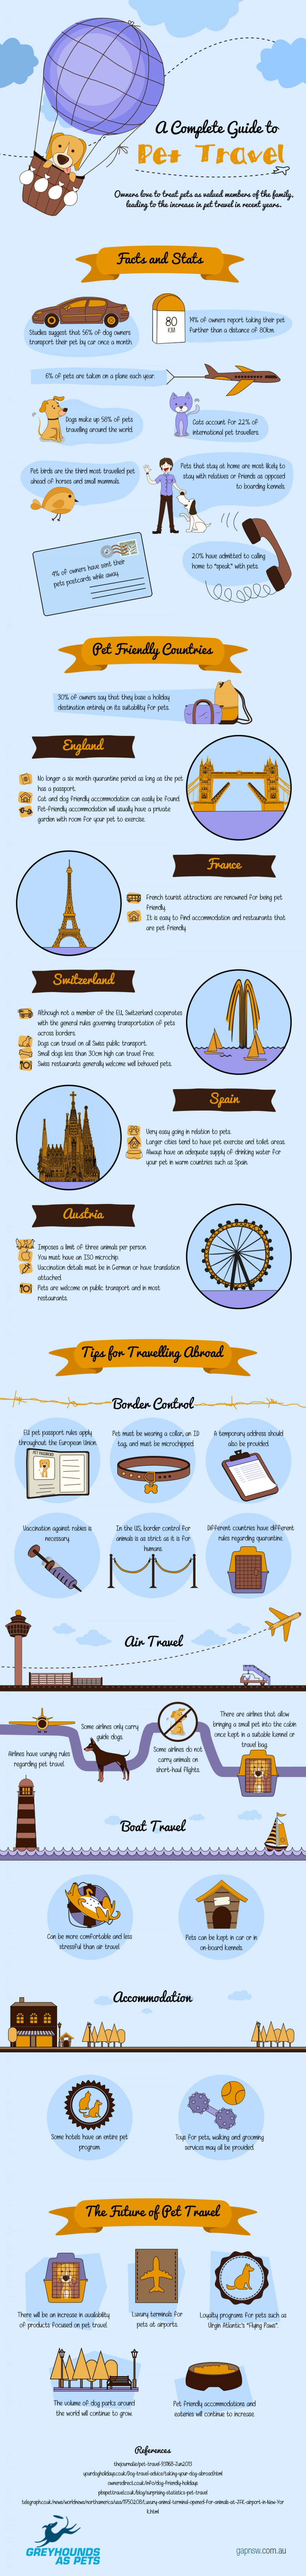 a-complete-guide-to-pet-travel-an-infographic 5617c0b8c8b0a w1500